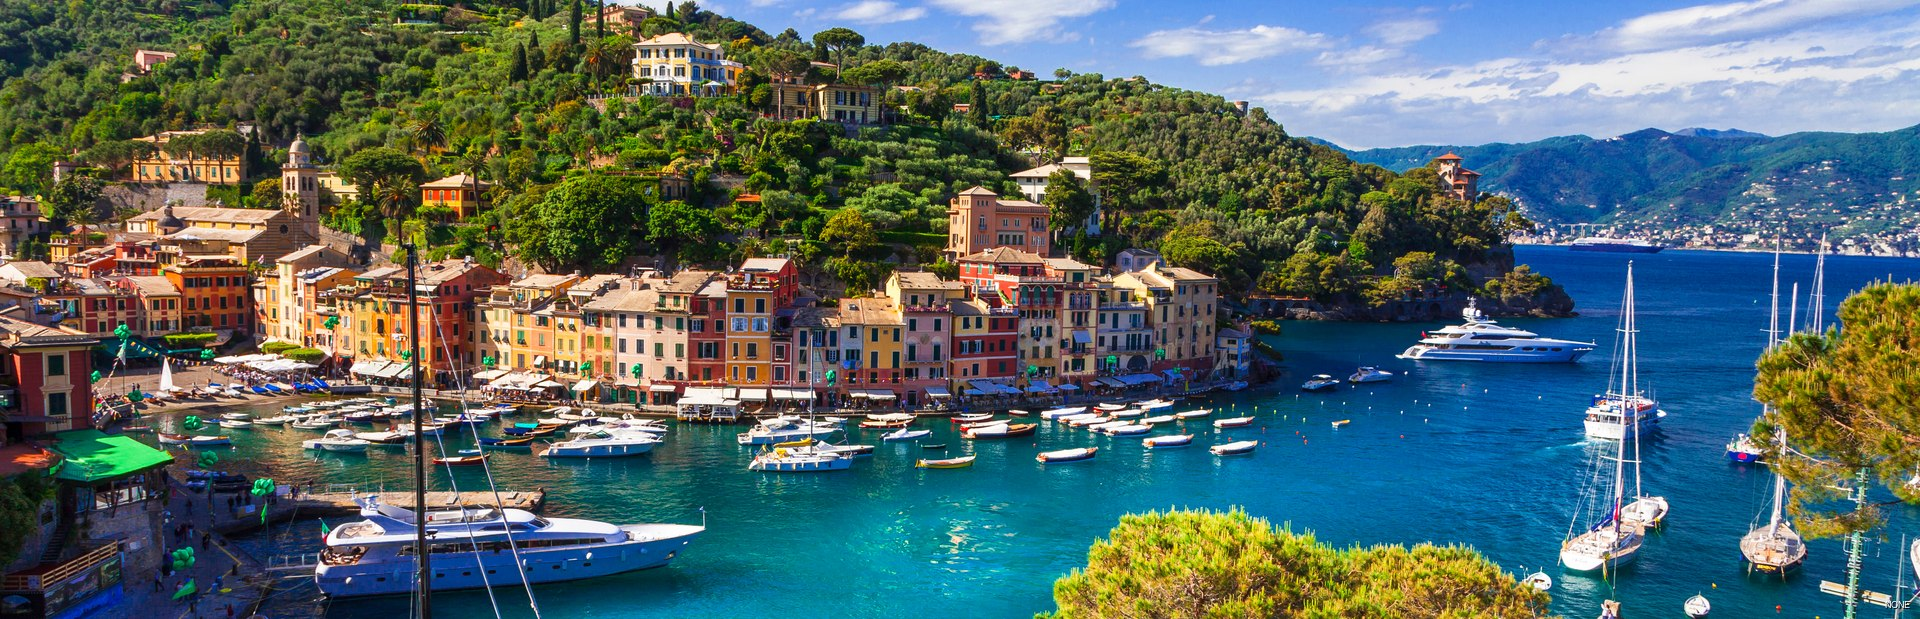 Italy inspiration and tips